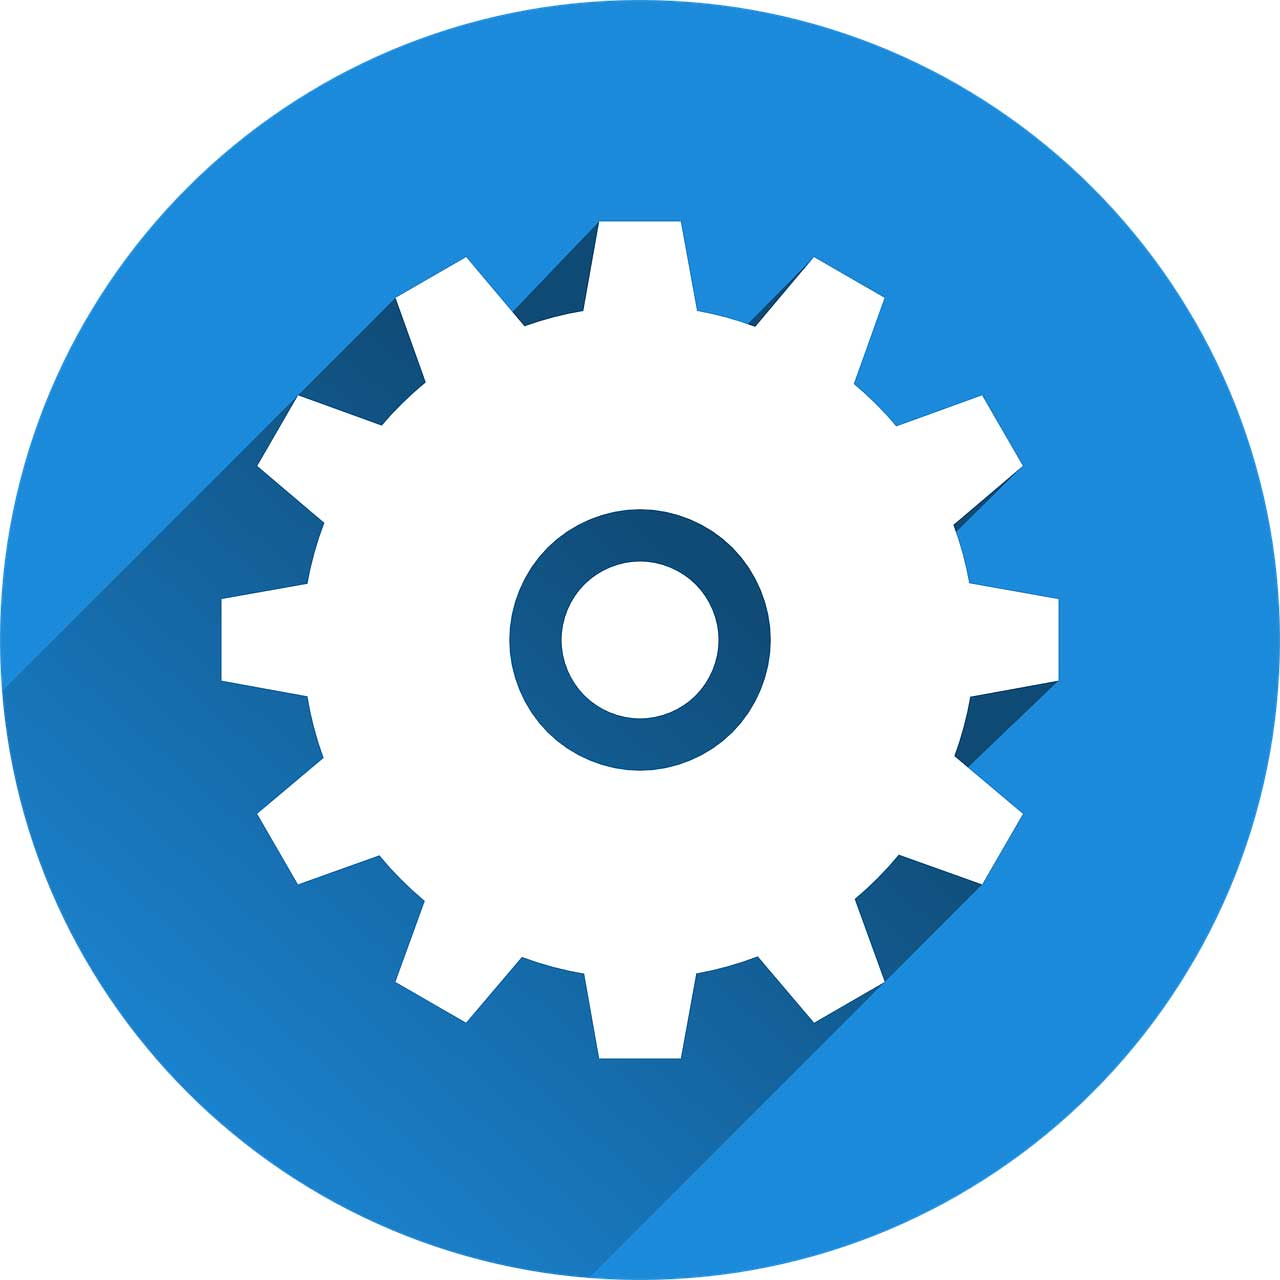 Gears of automation